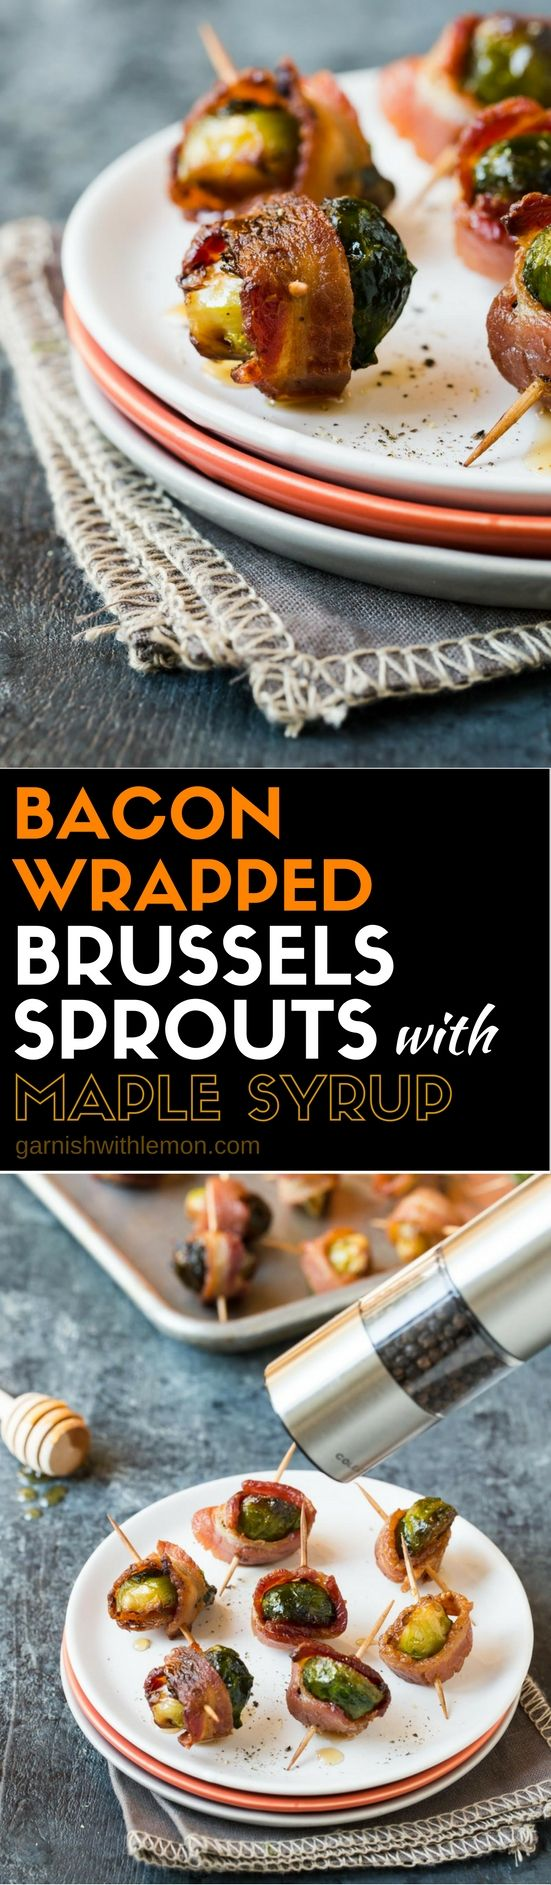 These Bacon Wrapped Brussels Sprouts with Maple Syrup are an easy appetizer that can be prep in advance and baked right before guests arrive - perfect party food!